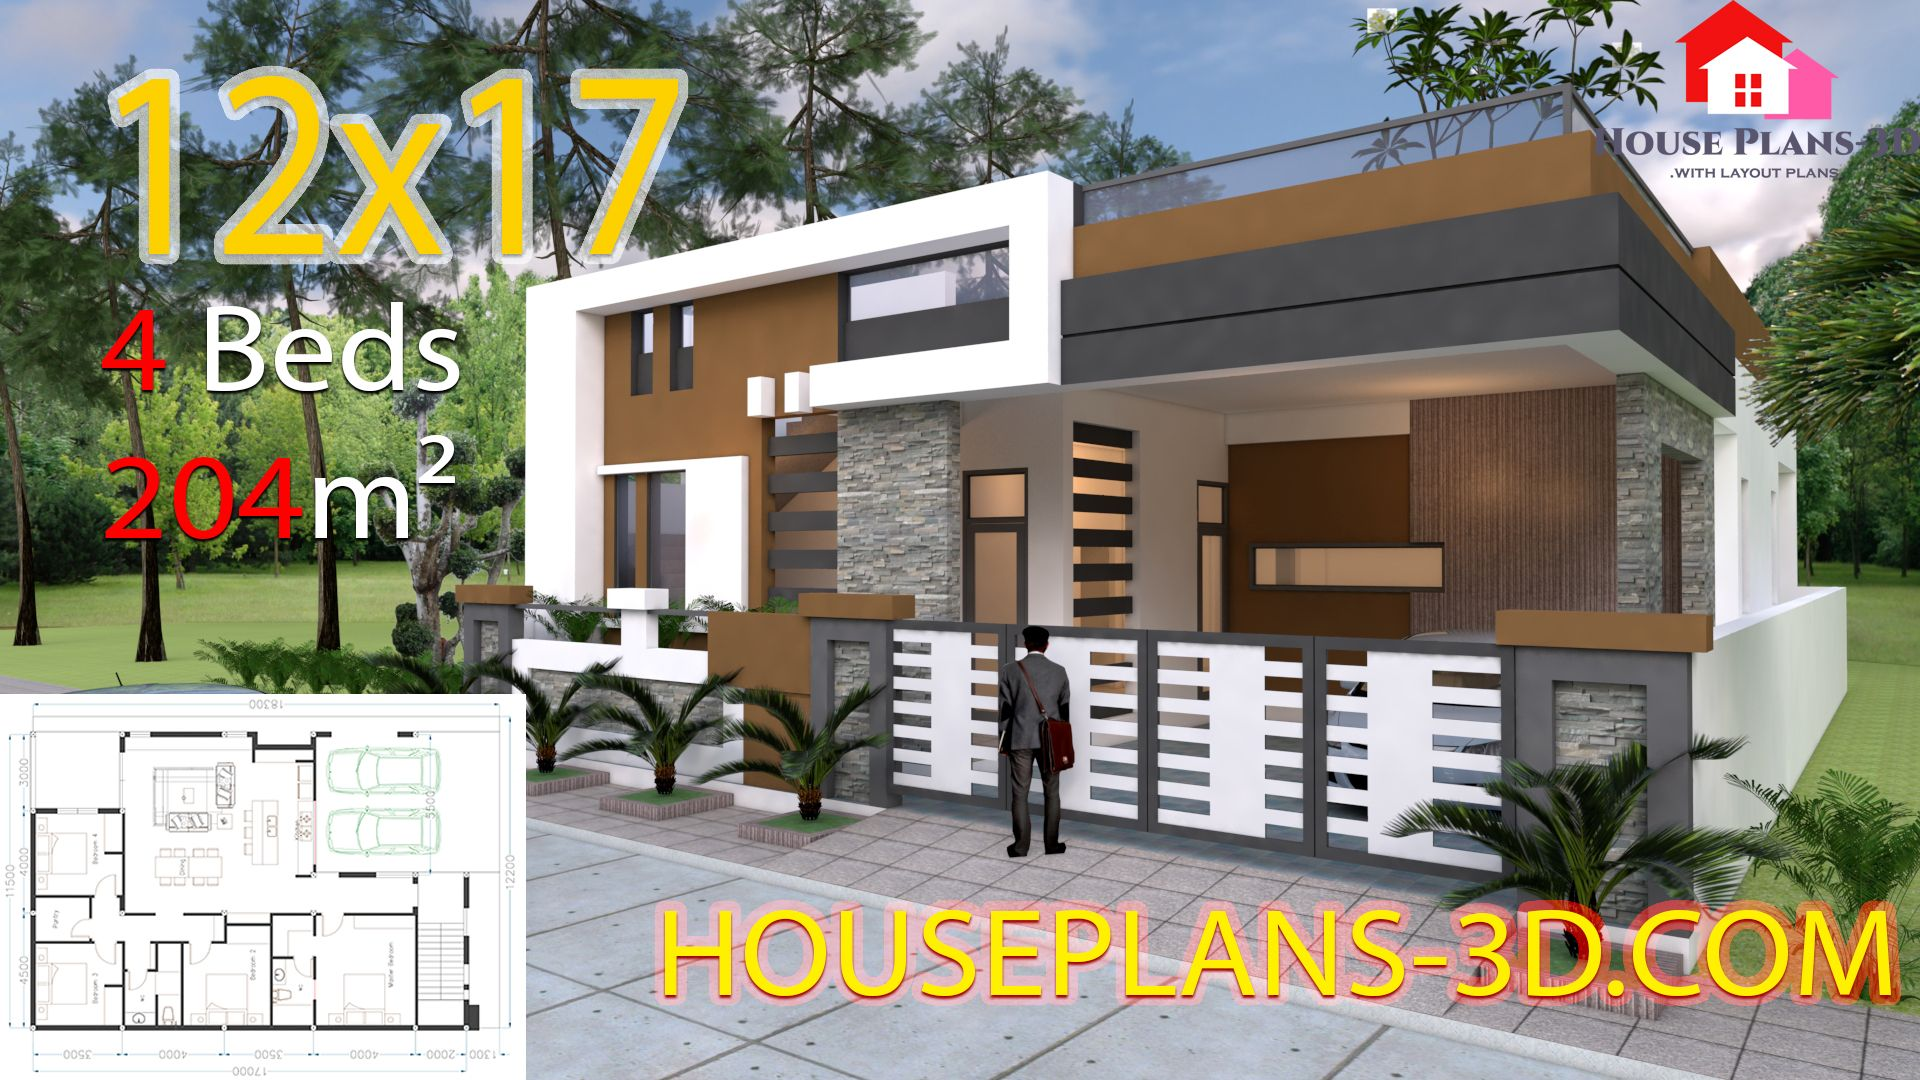 Pin By Ami Gumiho On Yang Saya Simpan In 2020 House Plans House Design Bungalow House Design